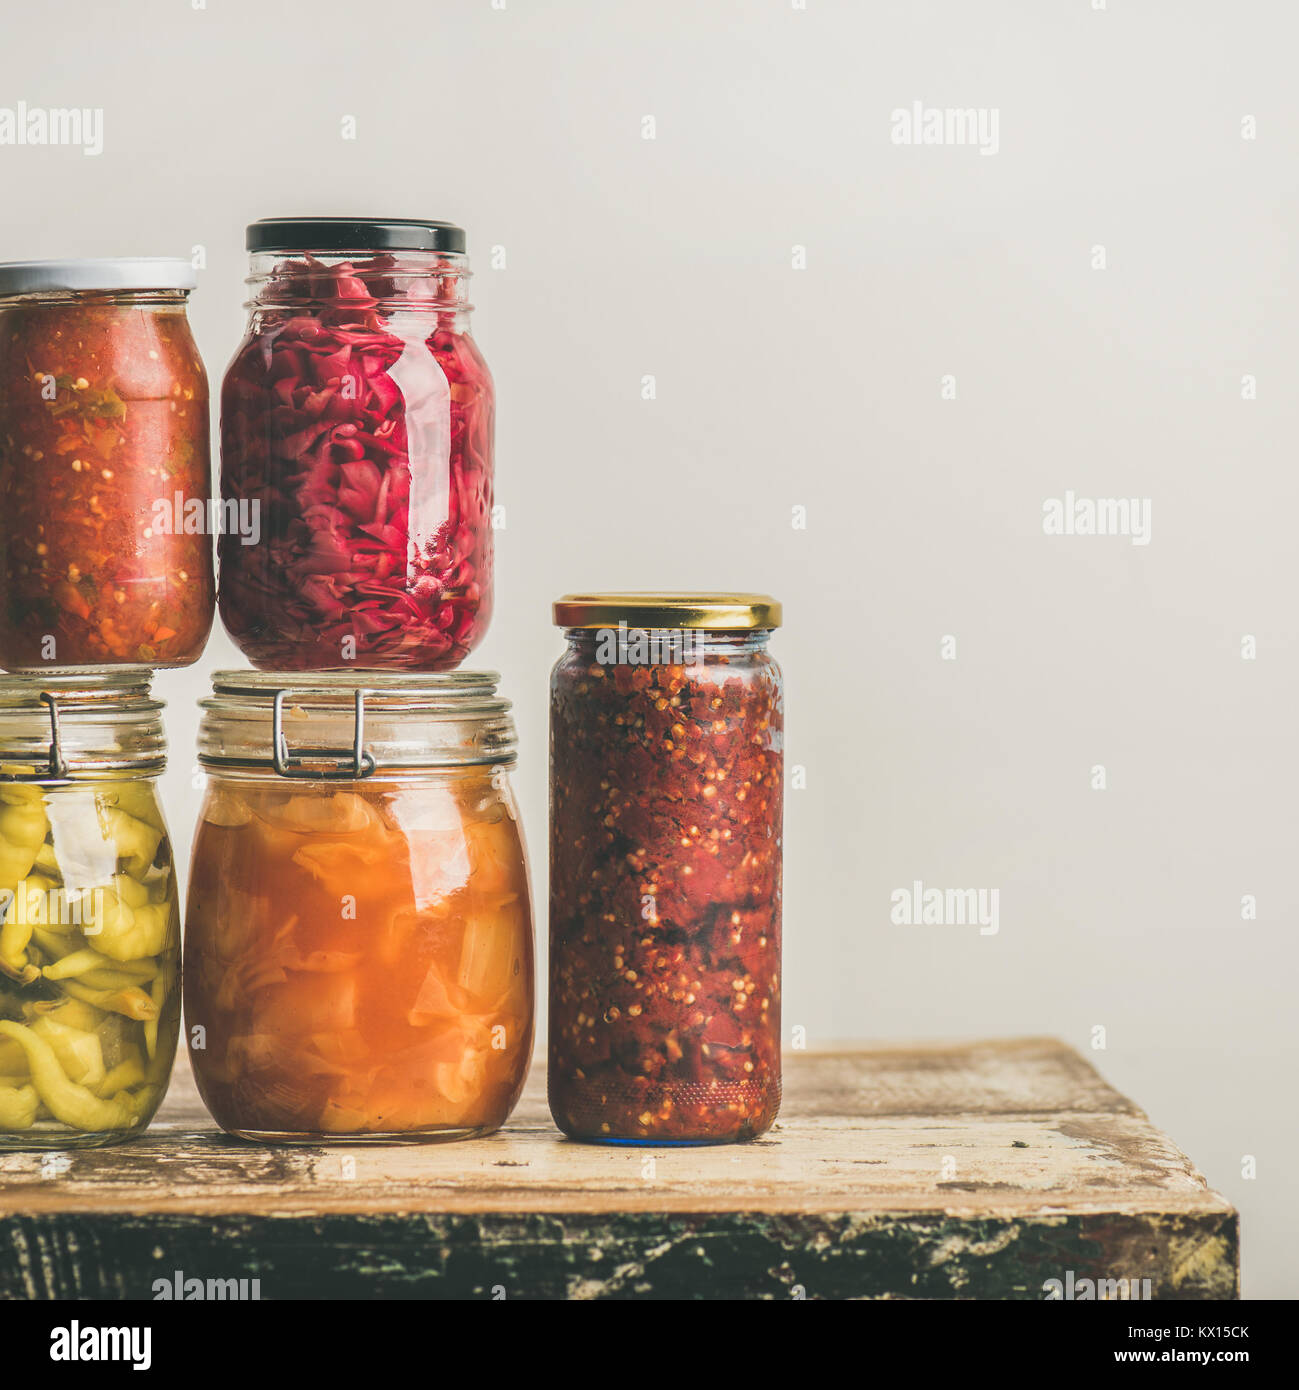 Autumn seasonal pickled or fermented vegetables in jars. Home canning - Stock Image